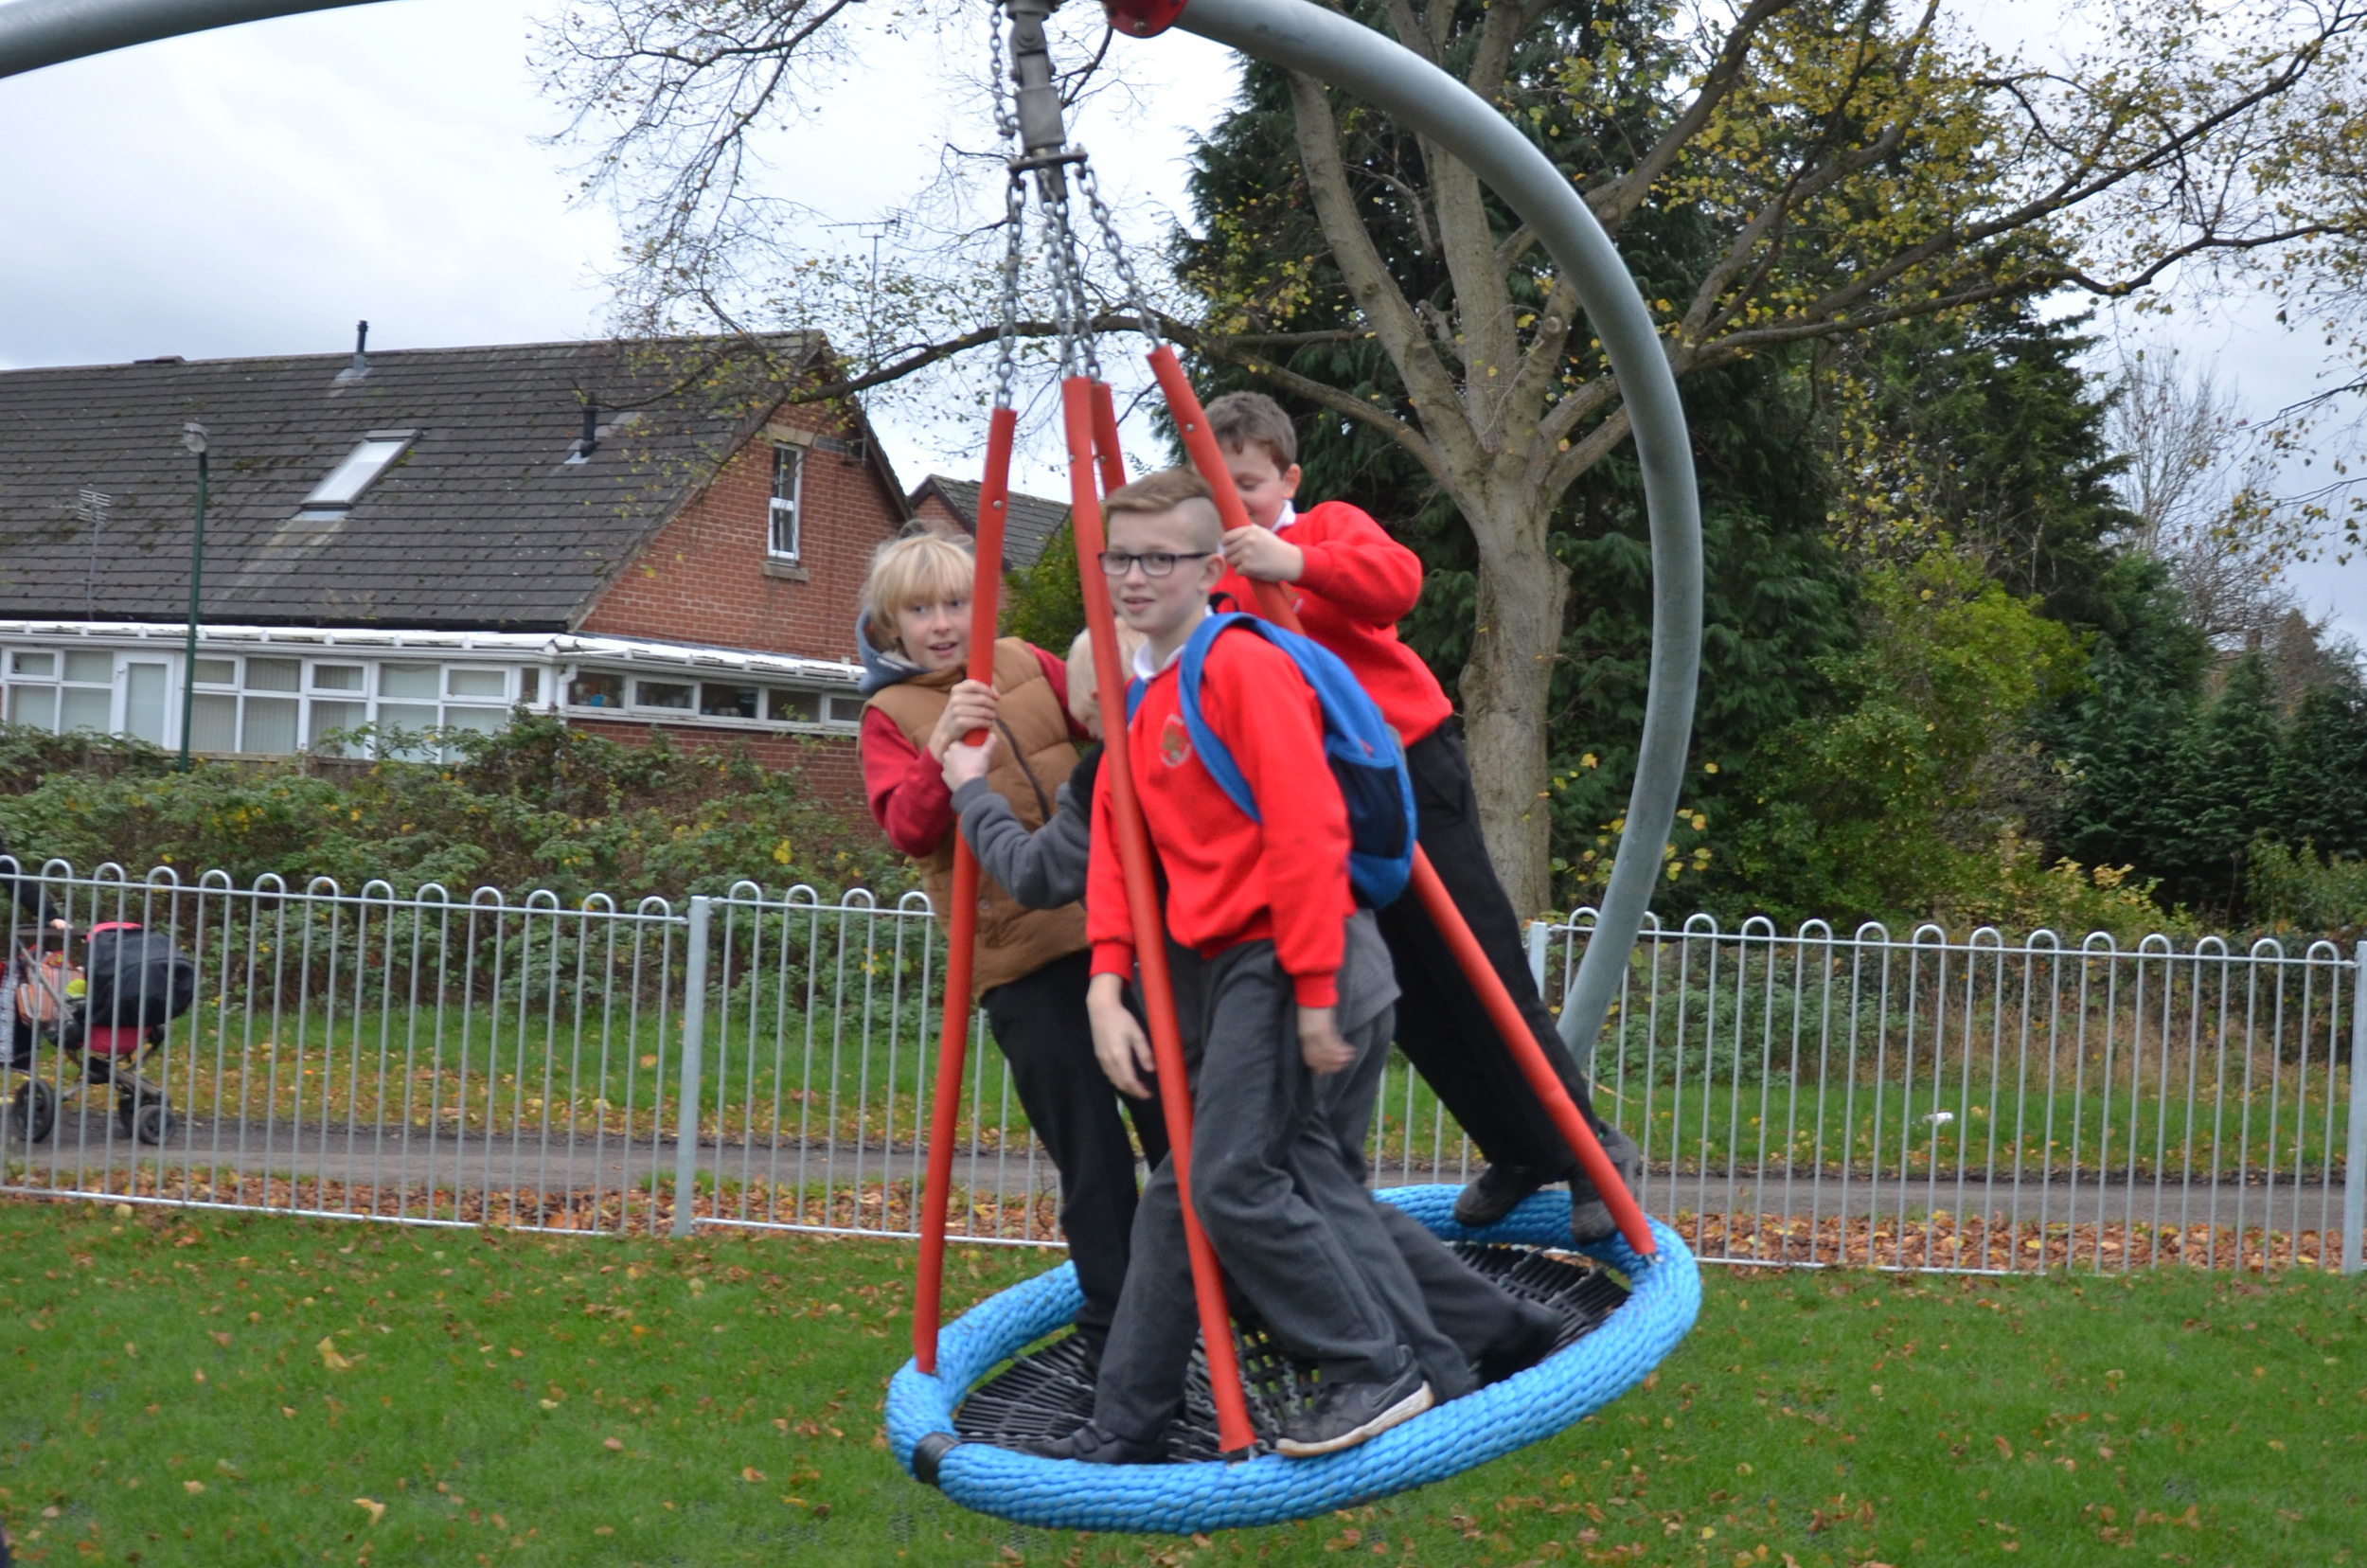 the inclusive single point swing, three children stand in the blue basket seat hanging on chain from a central red pivot held by three curved silver legs, it is sat above grass with a surrounding silver fence with a house and trees in the background